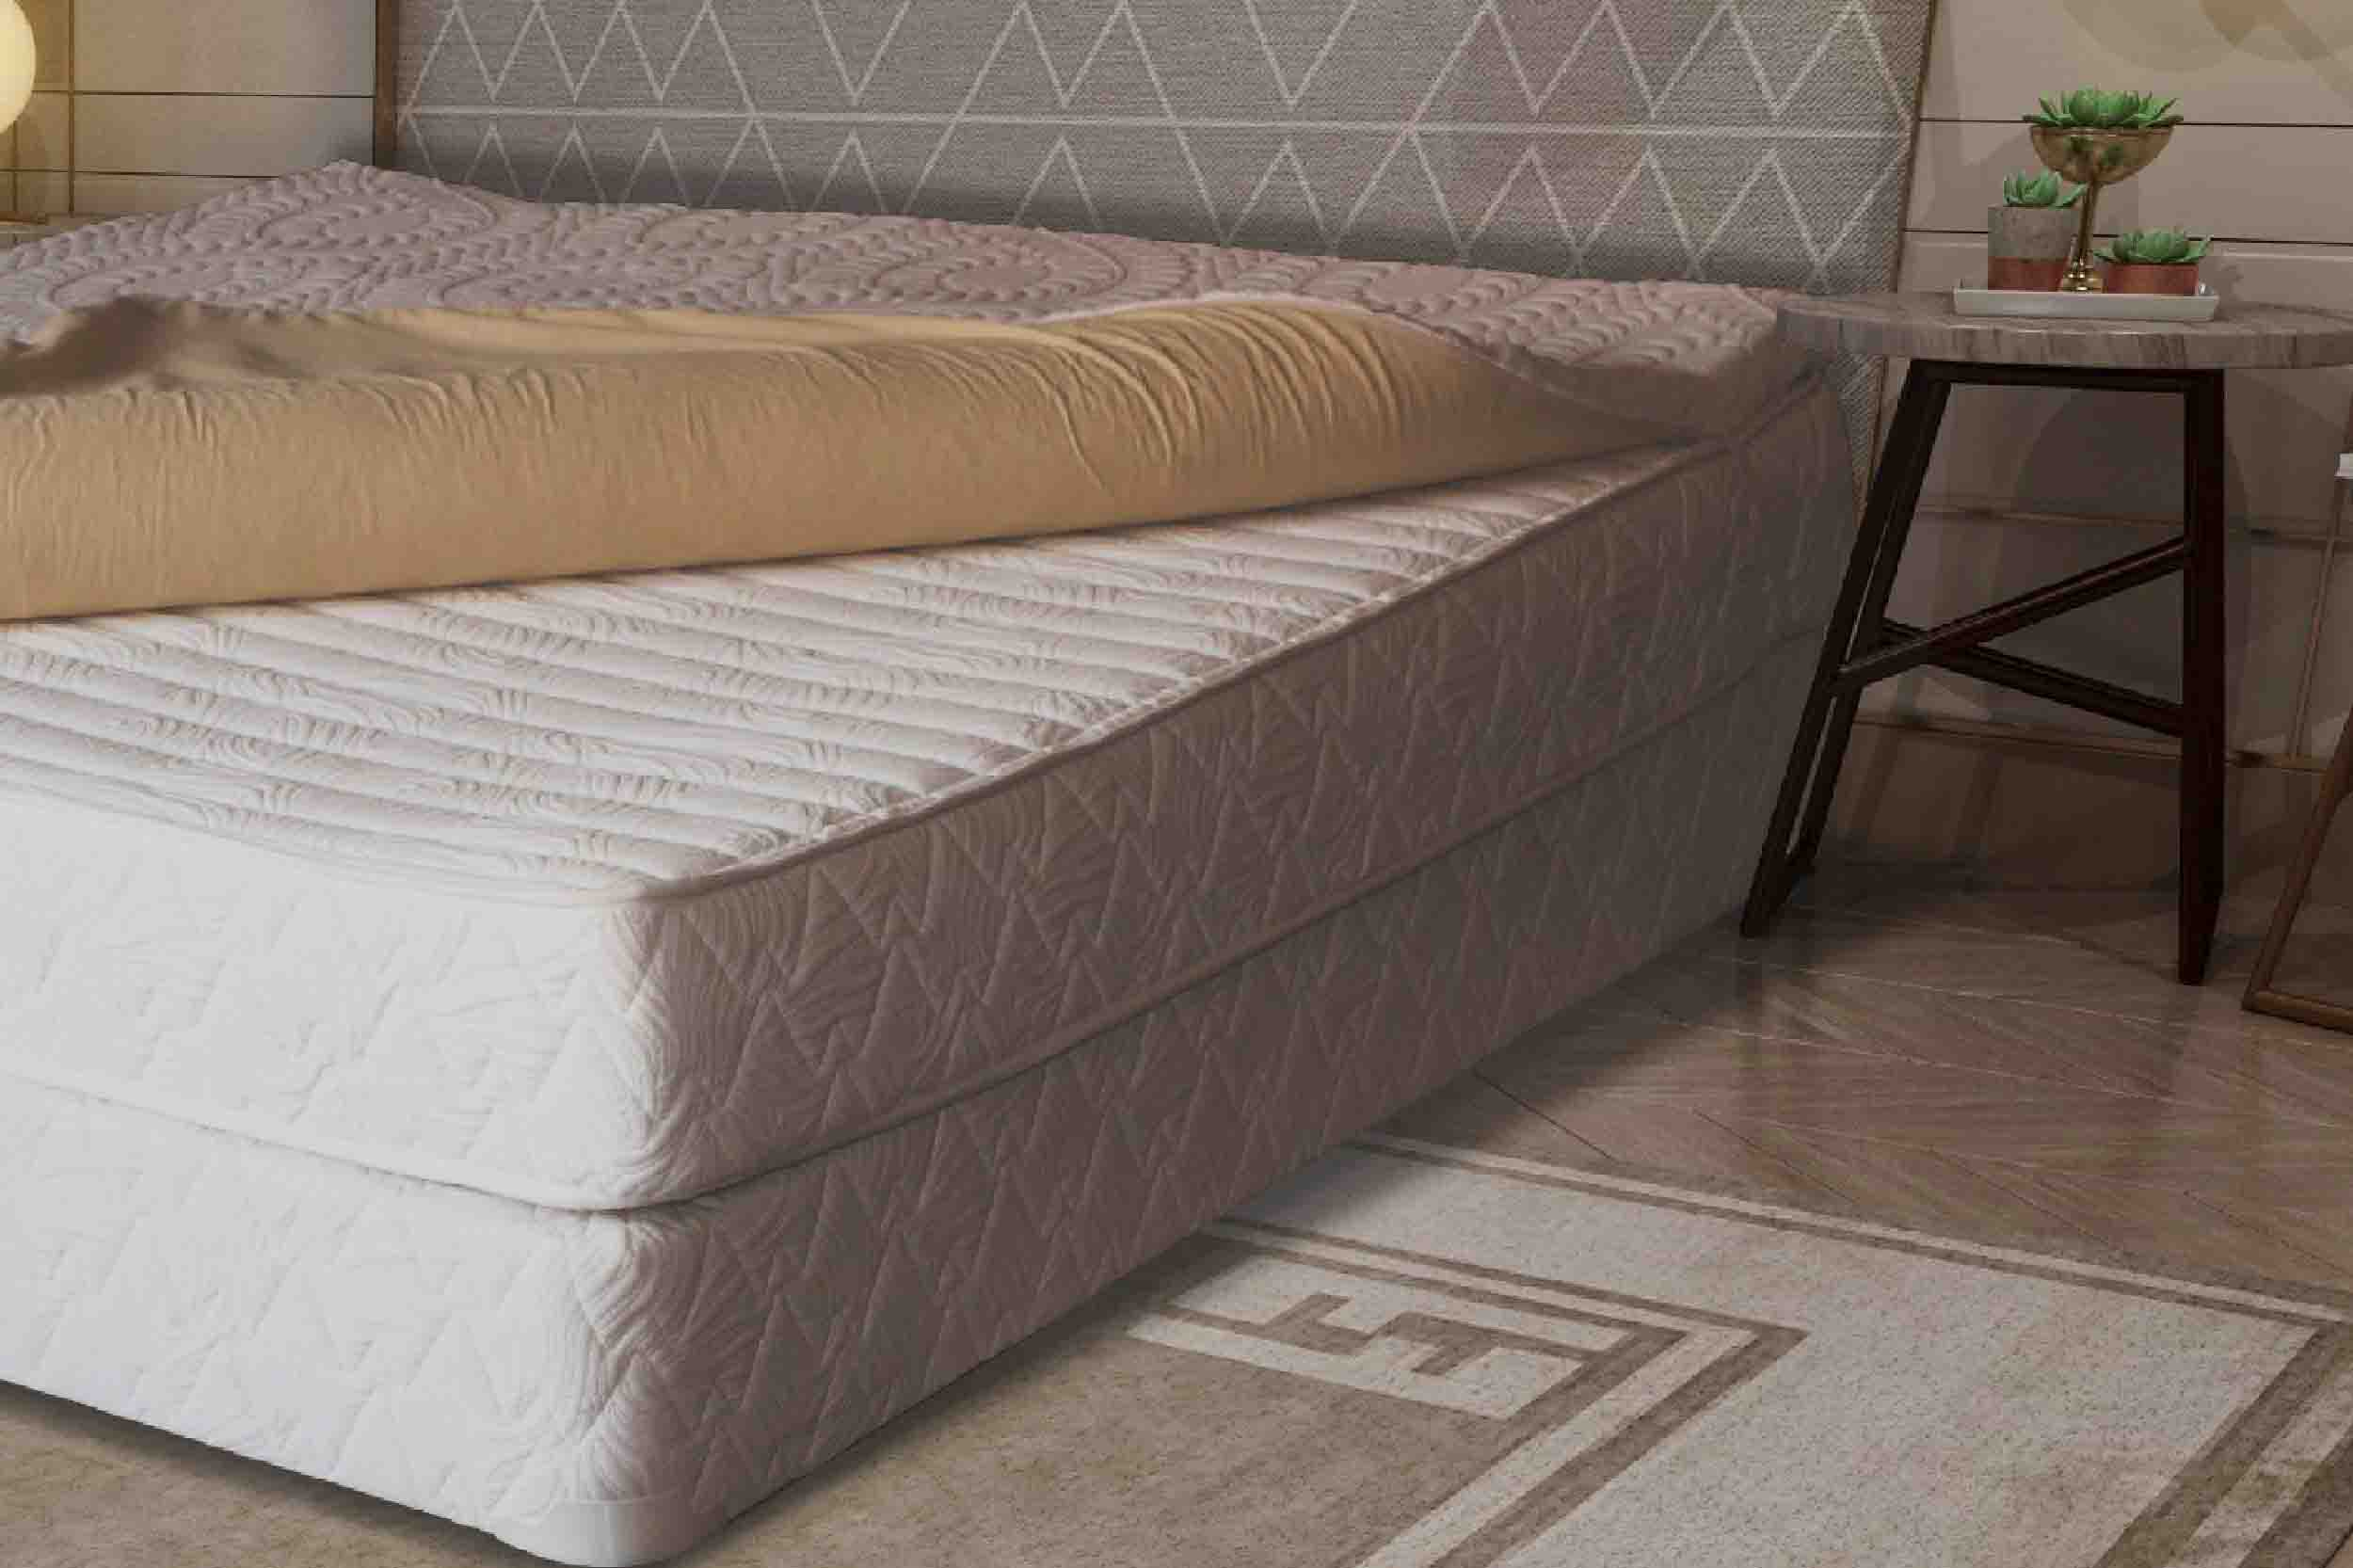 Is Mattress Protector an Investment or just an Unnecessary Expense?